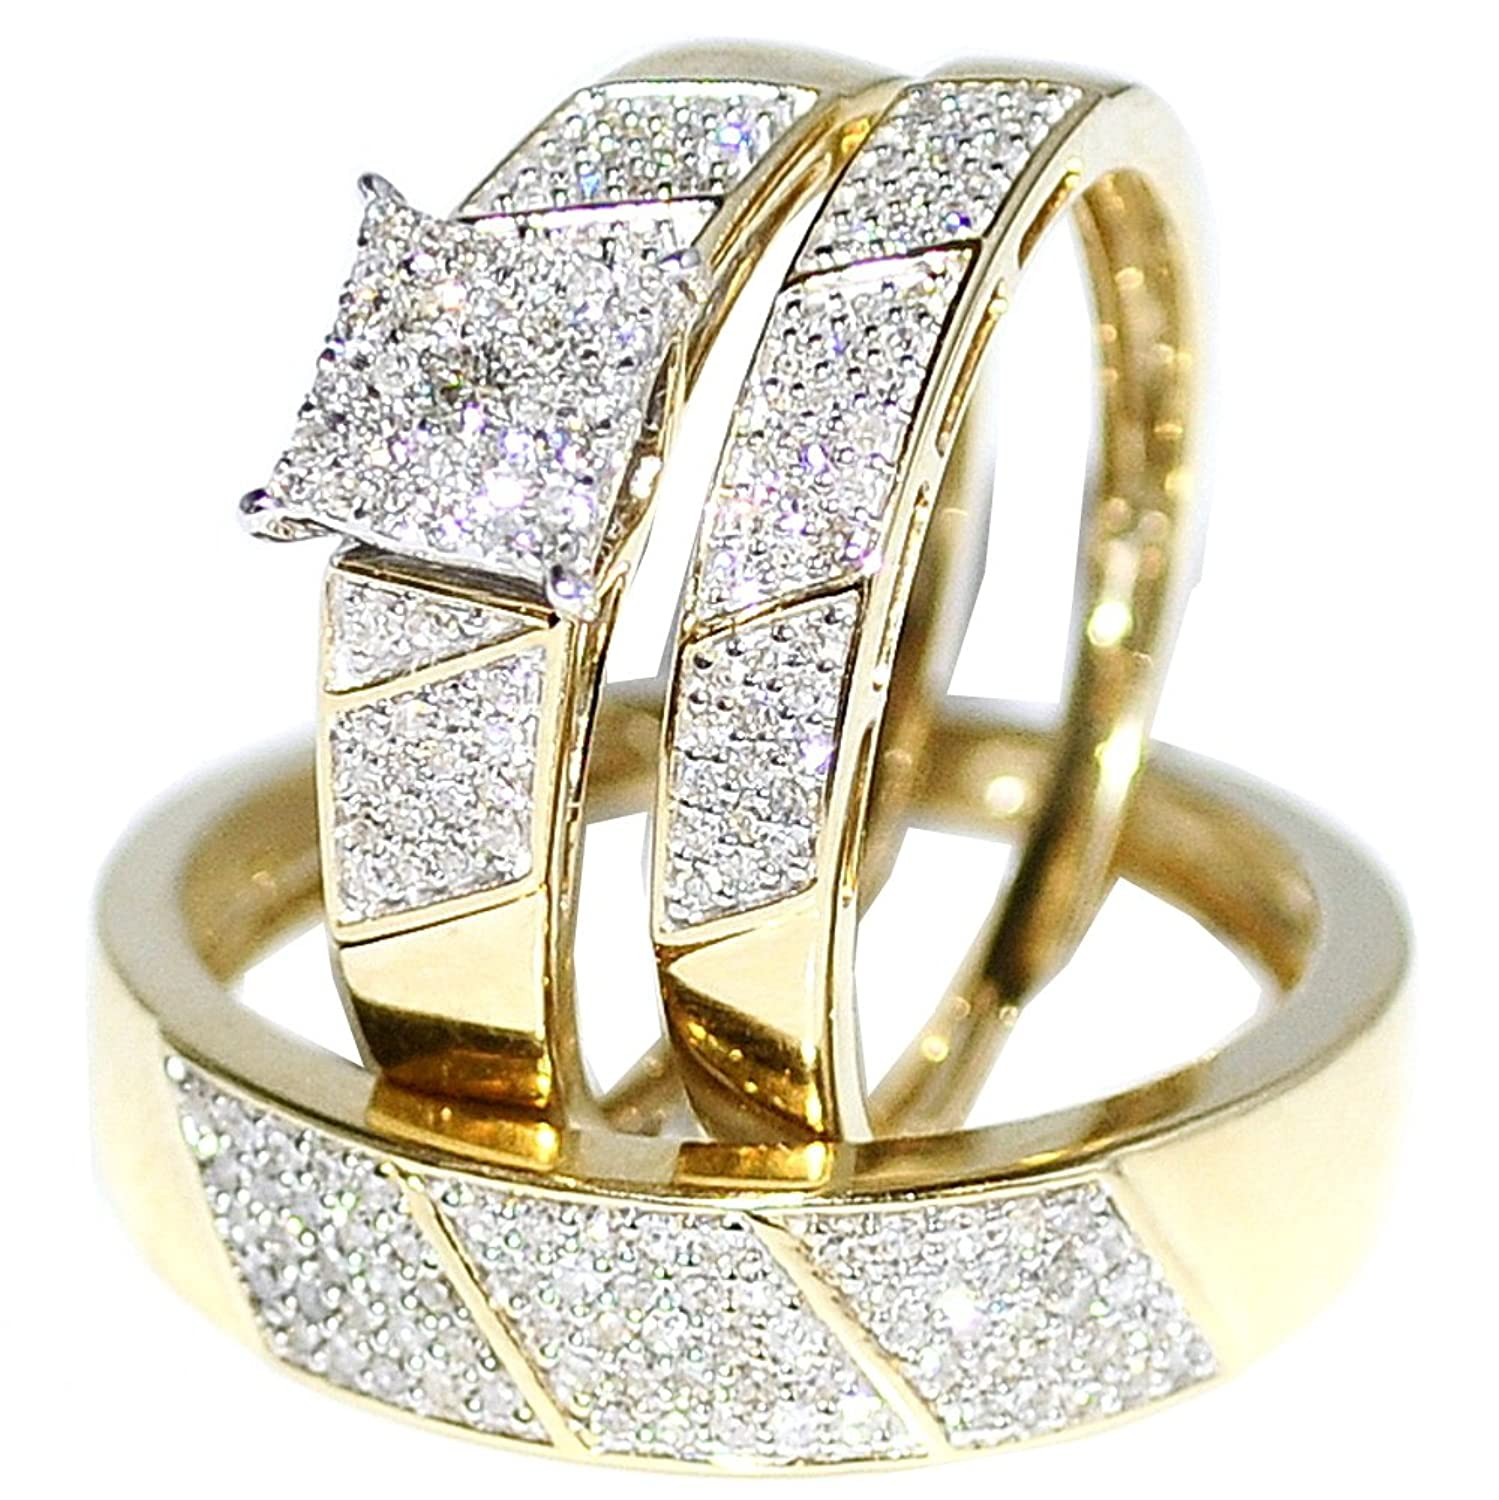 engagement rings wedding com bride groom evgplc and ring sets